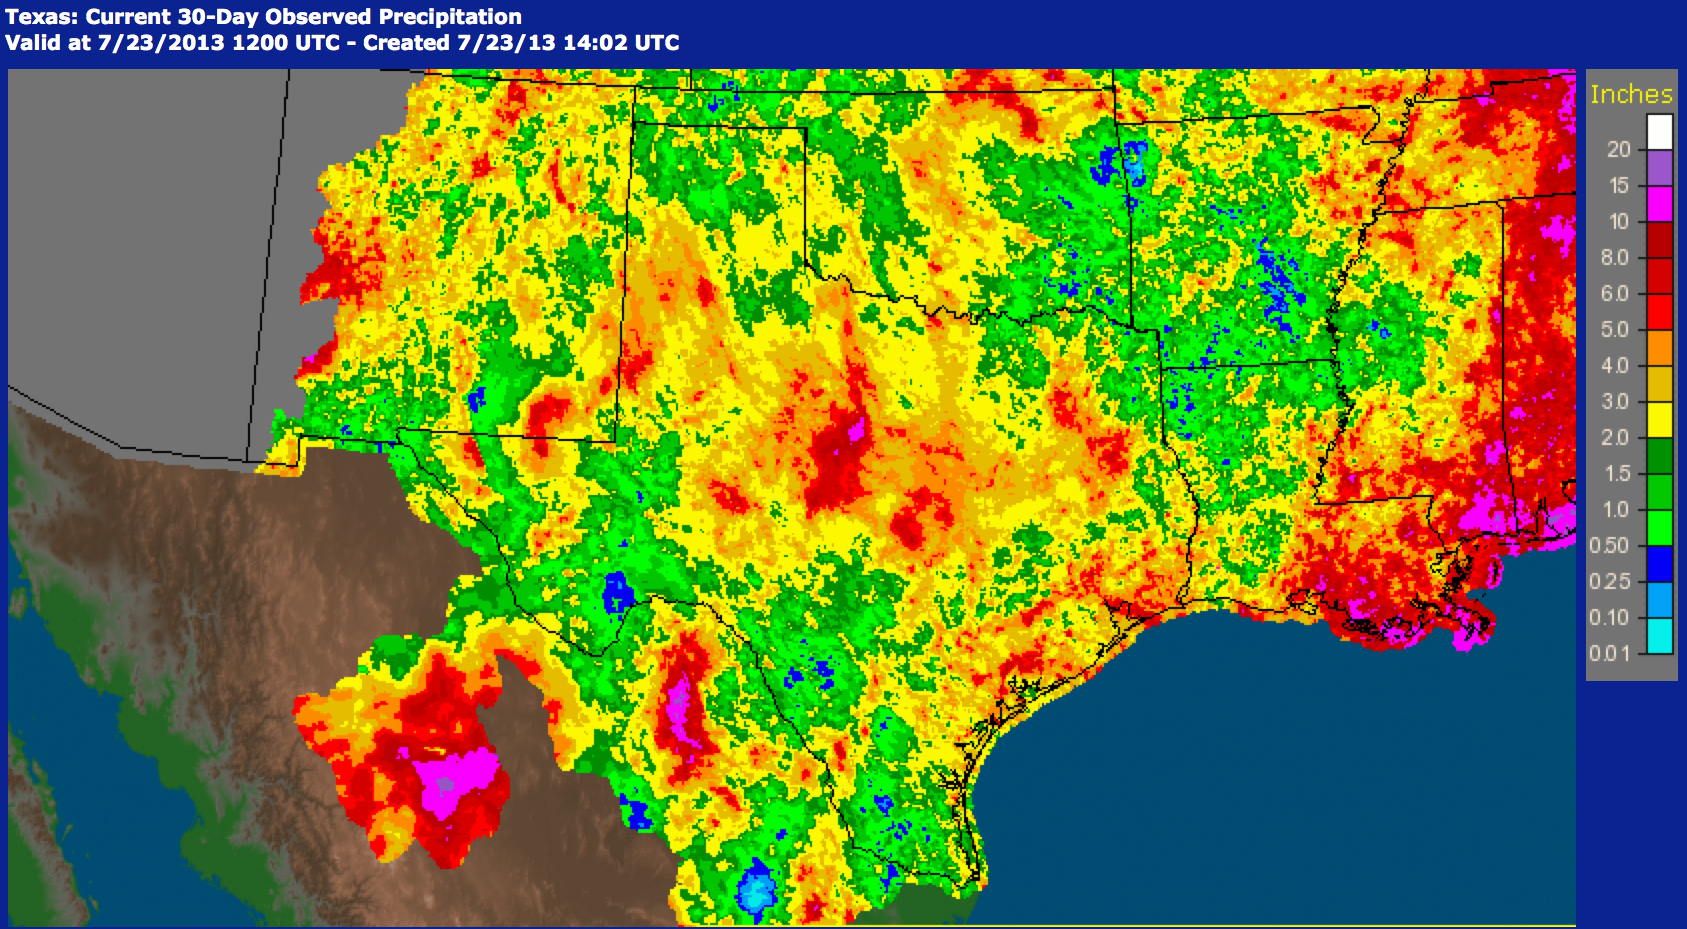 During the last 30 days, Texas rainfall ranged from 4 to 8 inches — with instances of 10 inches reported.